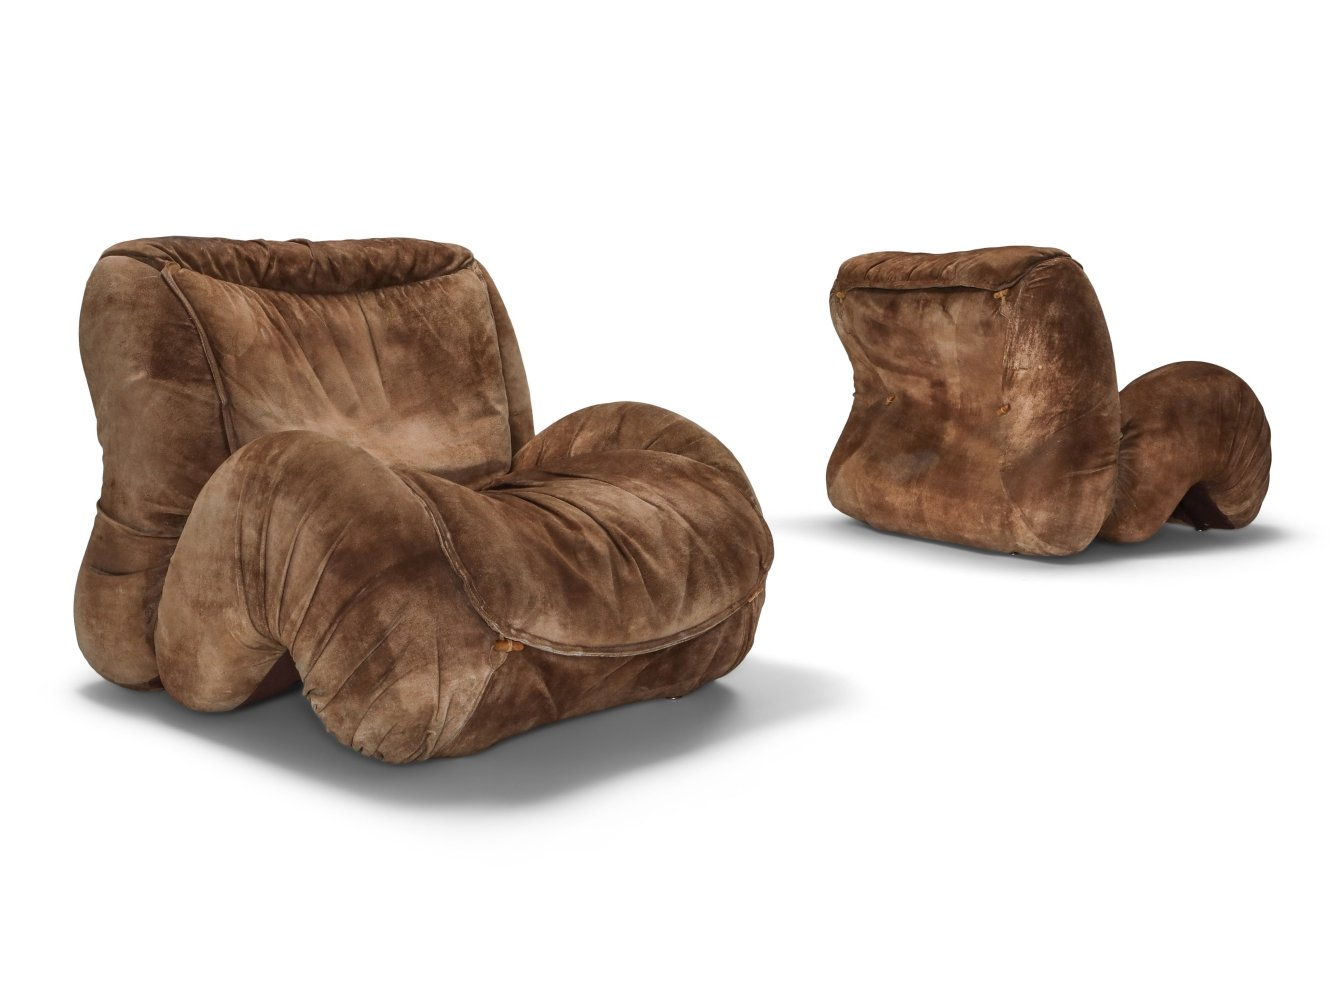 Suede pair of lounge chairs by Luciano Frigerio, 1970